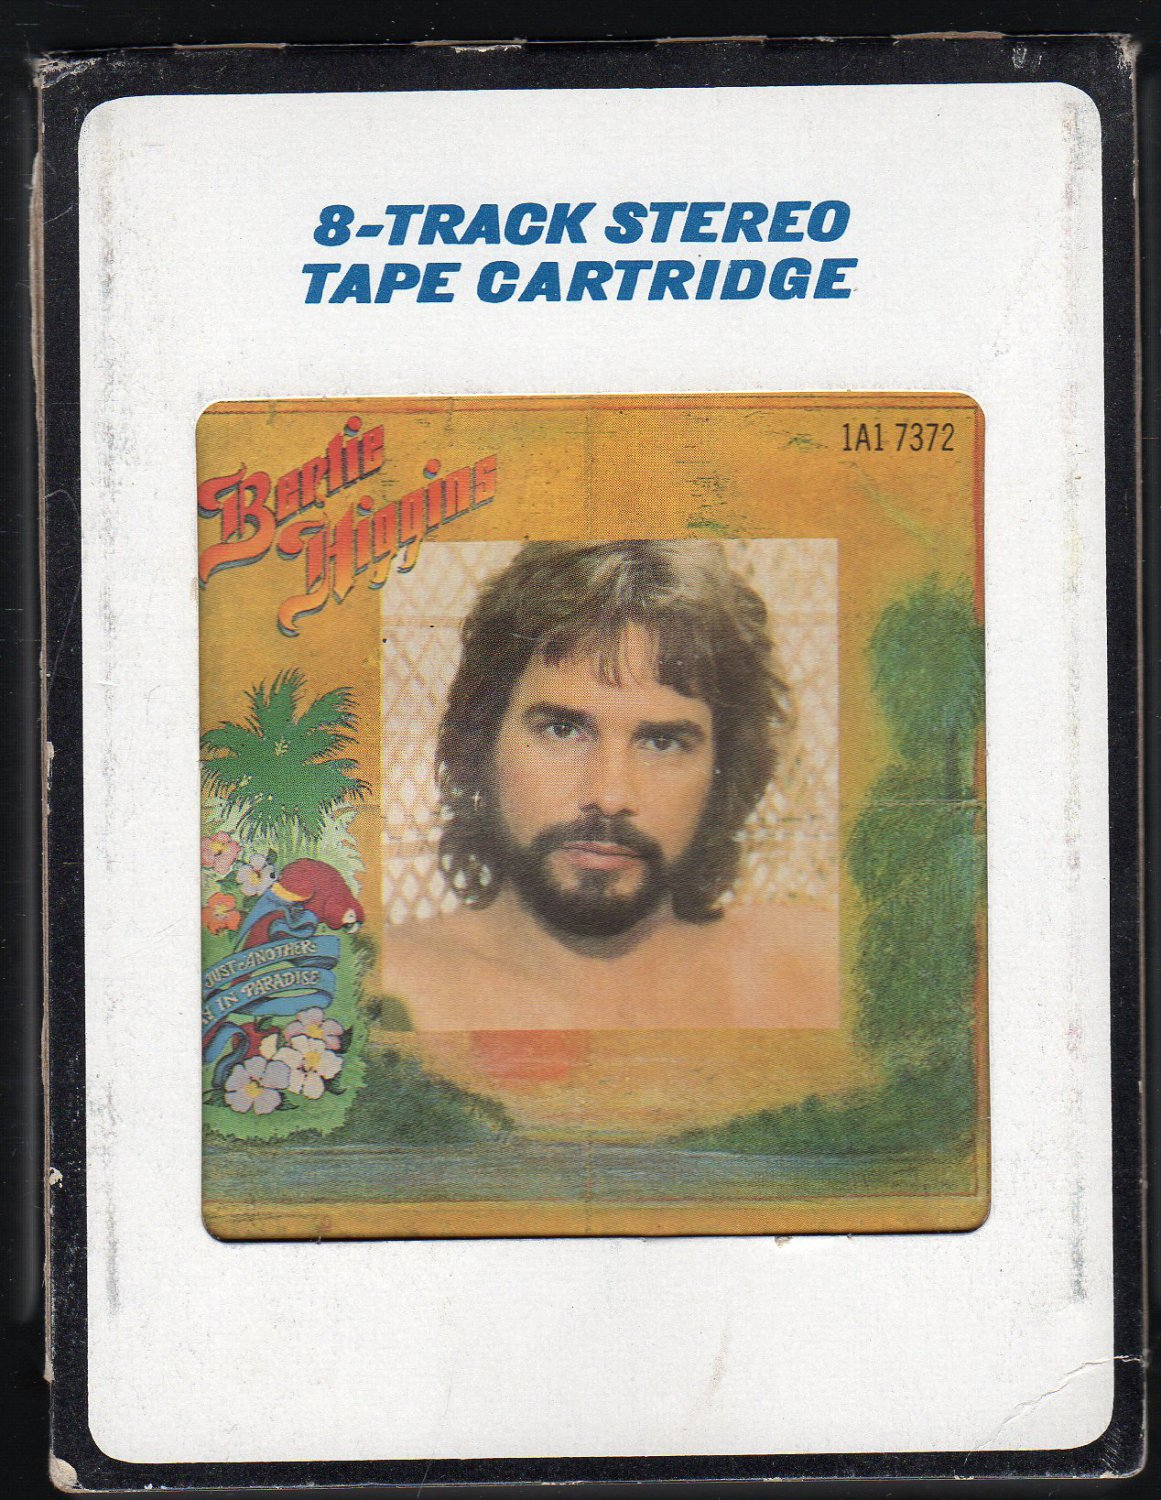 Bertie Higgins - Just Another Day In Paradise 1982 CRC 8-track tape